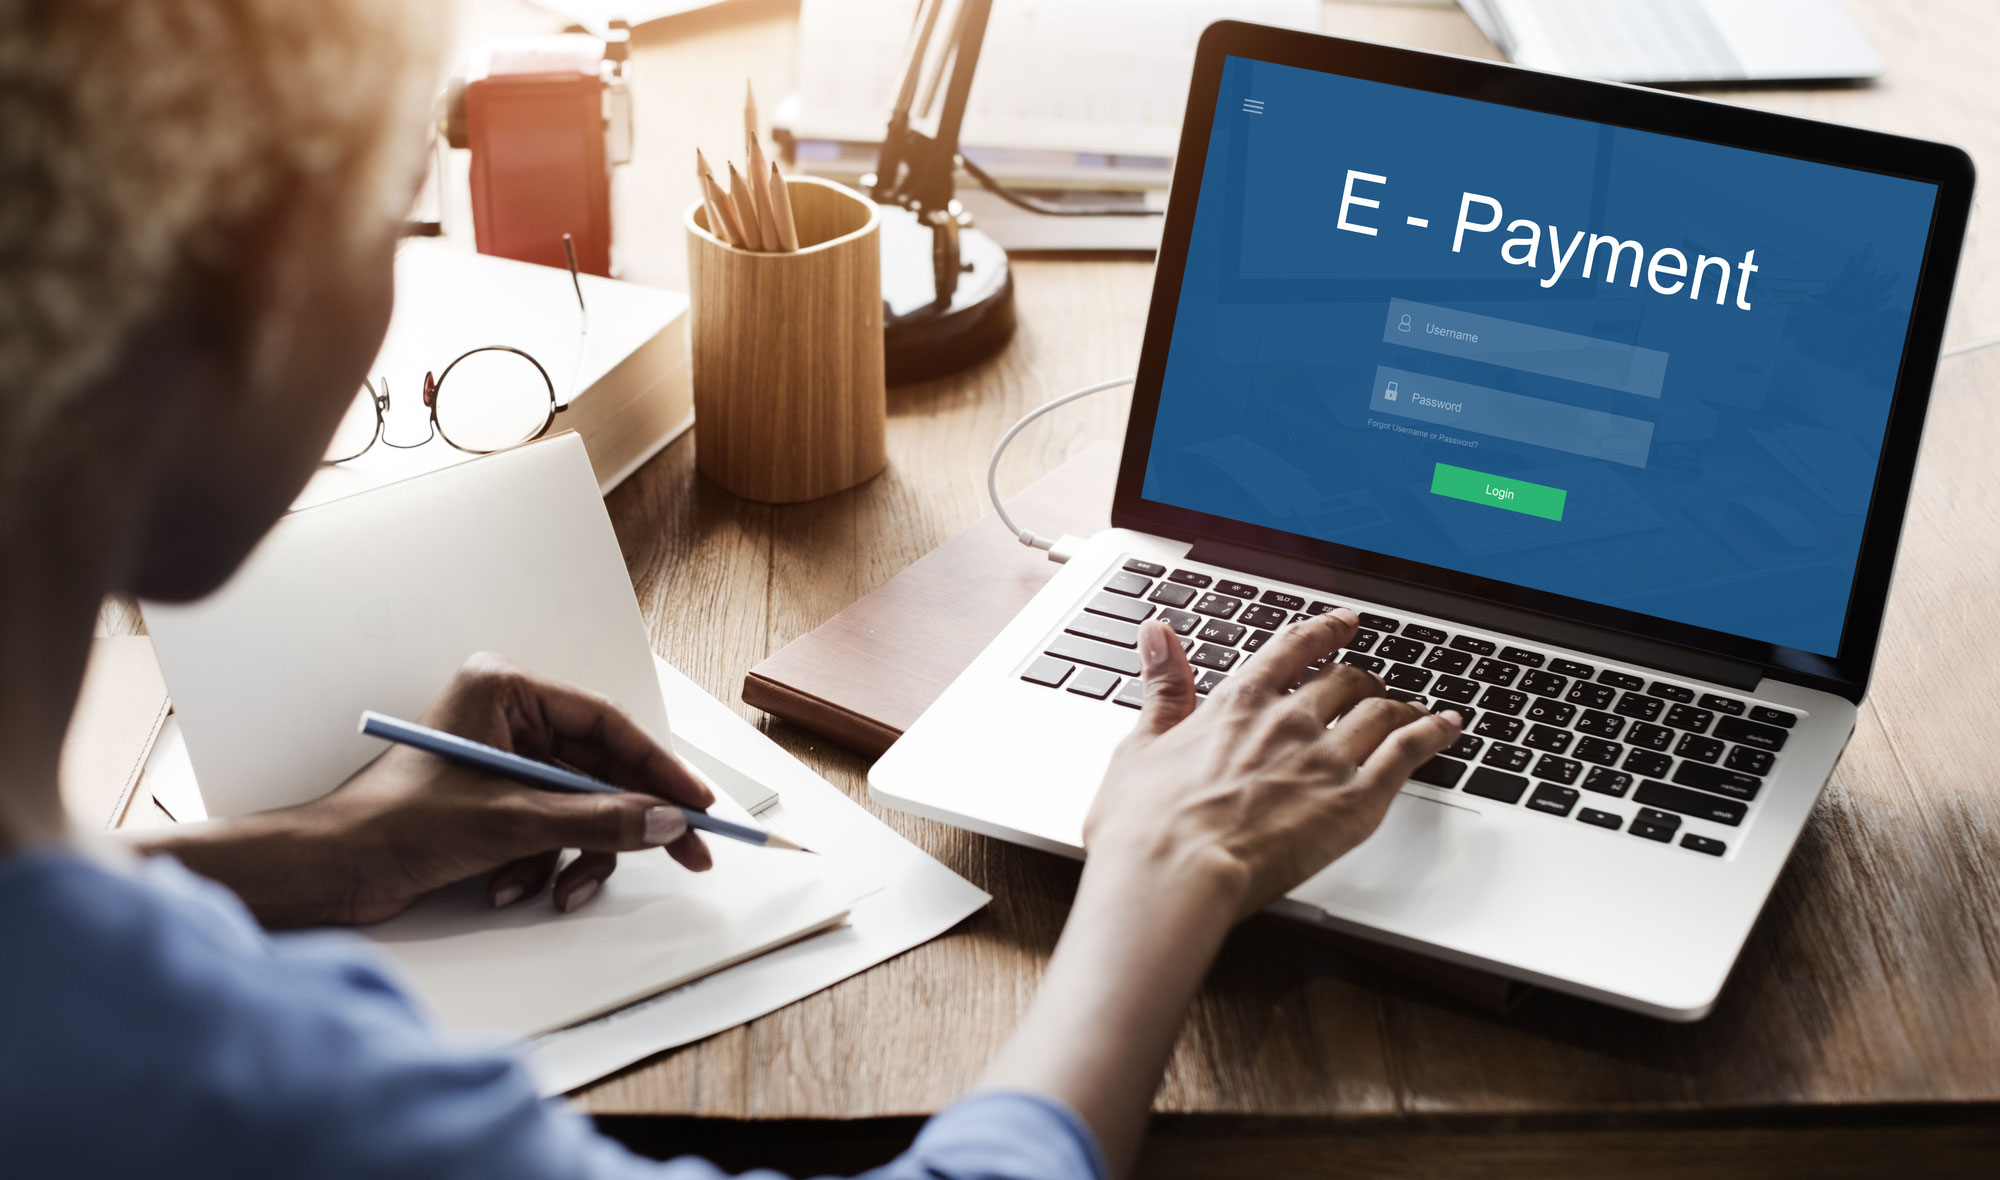 e-Payment Solutions Market to see Booming Business Sentiments | Paypal Payments Pro, Stripe, Google